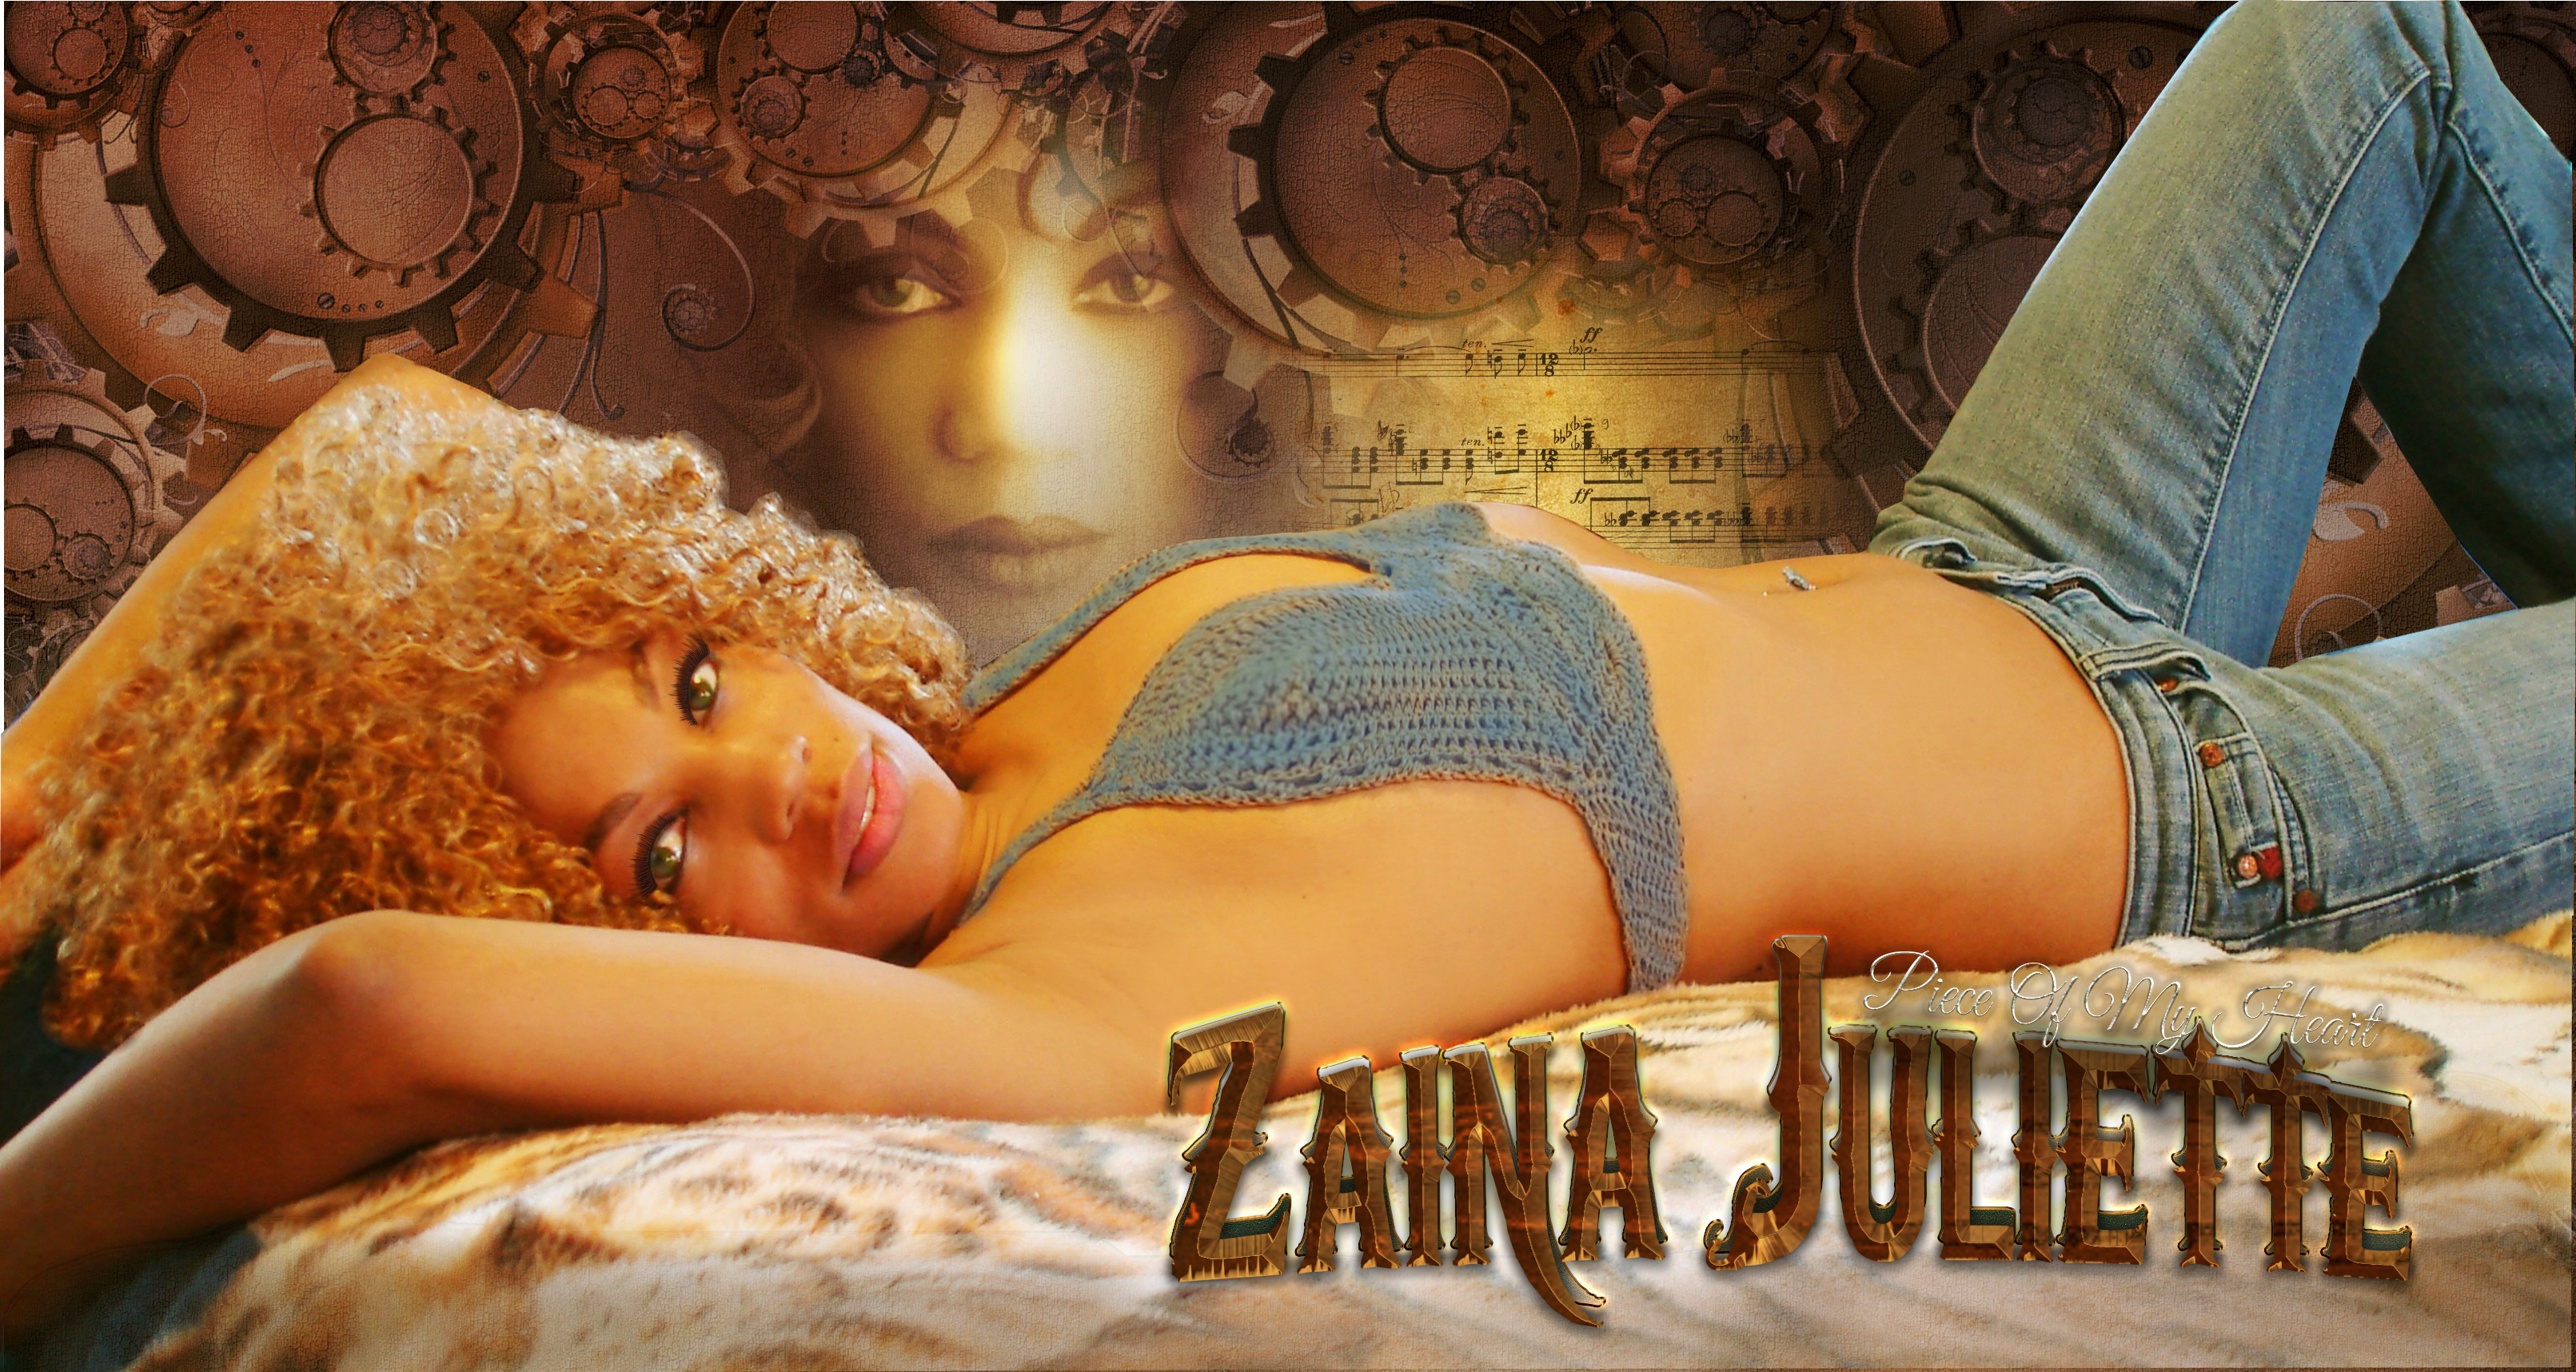 Zaina on the bed 2 POSTER 2